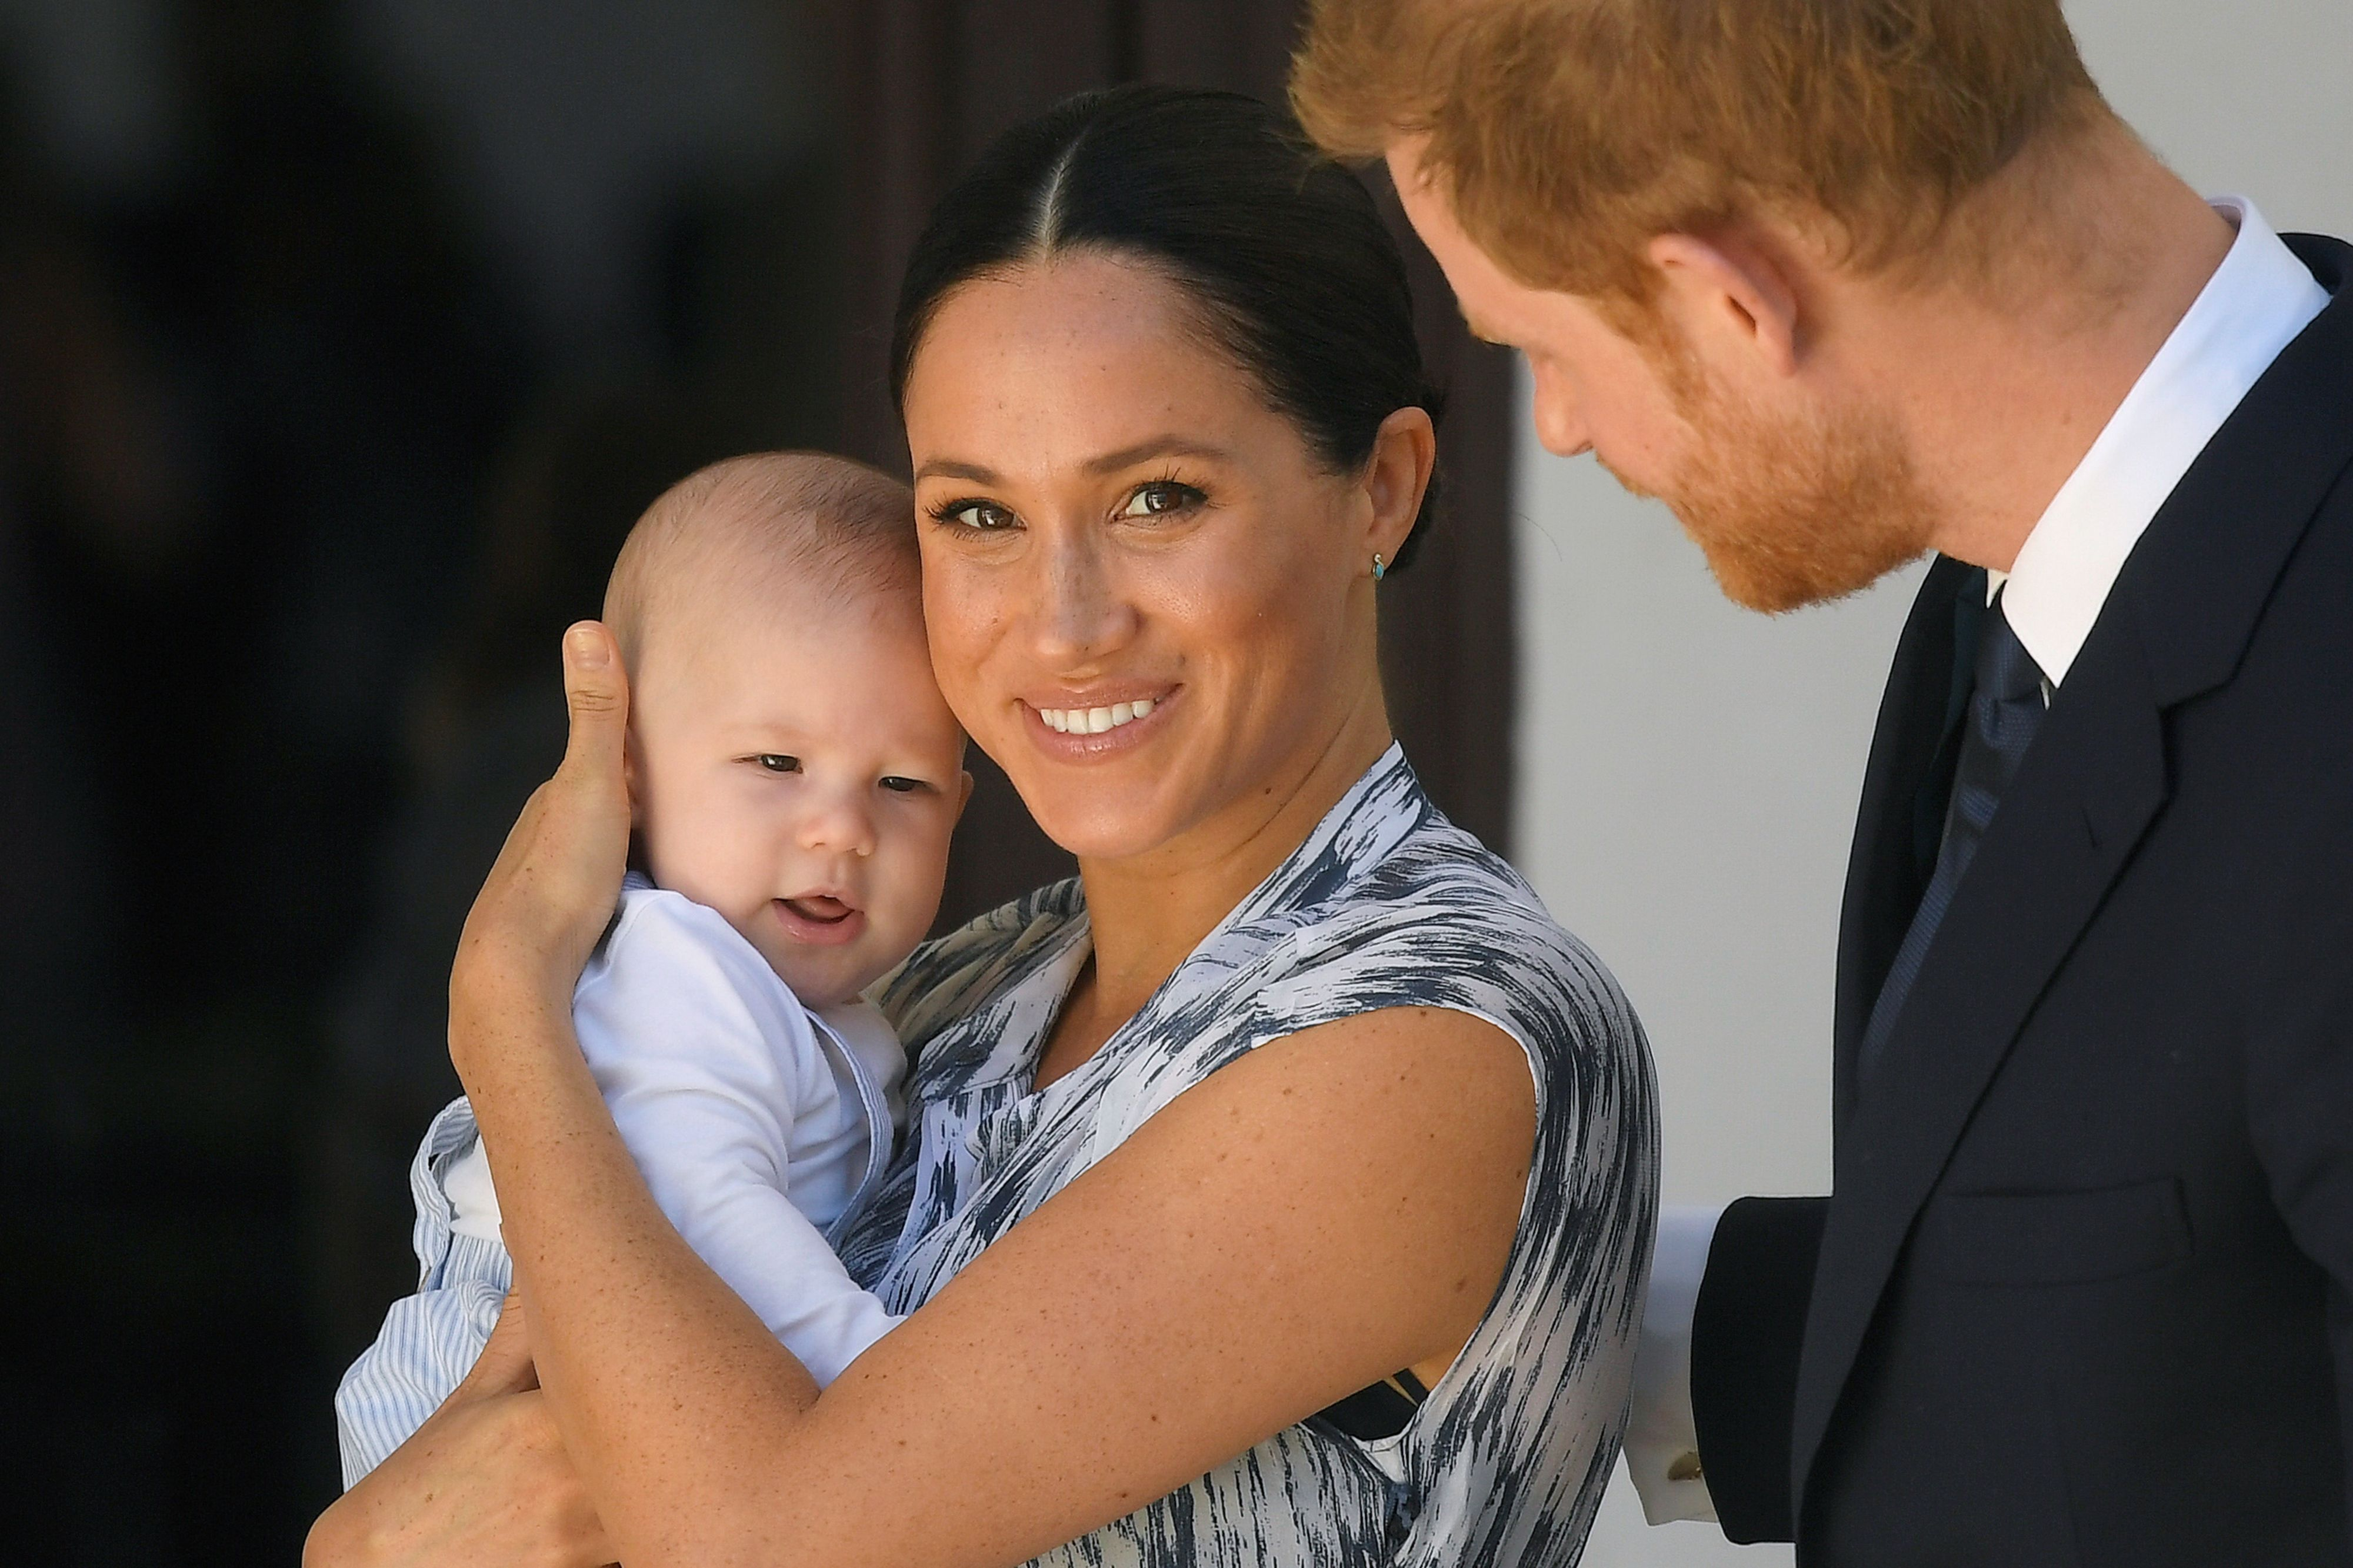 duchess of sussex backlash reaches highs but why duchess of sussex backlash reaches